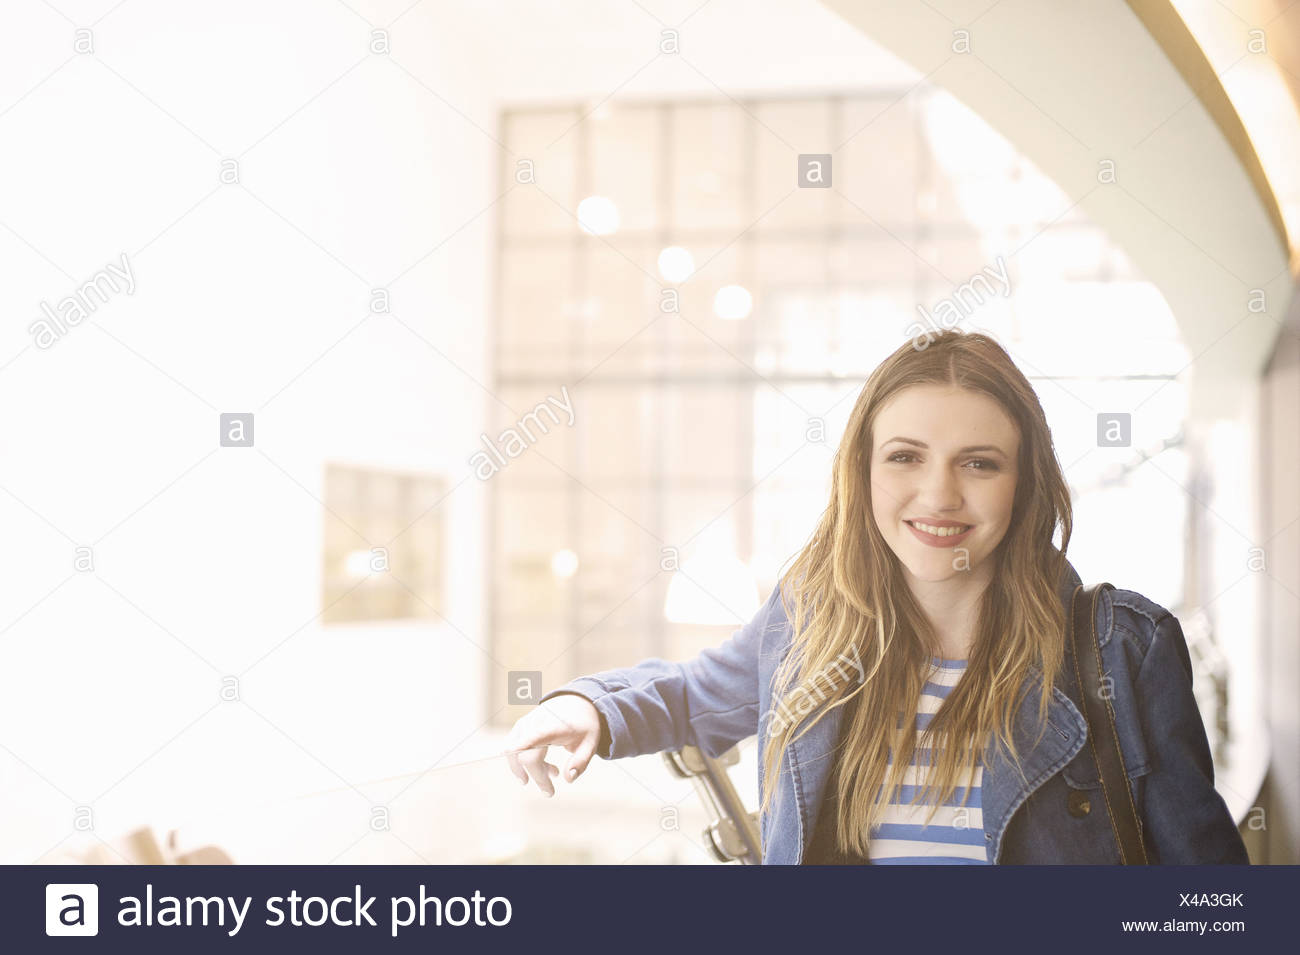 Young woman wearing denim jacket looking at camera - Stock Image